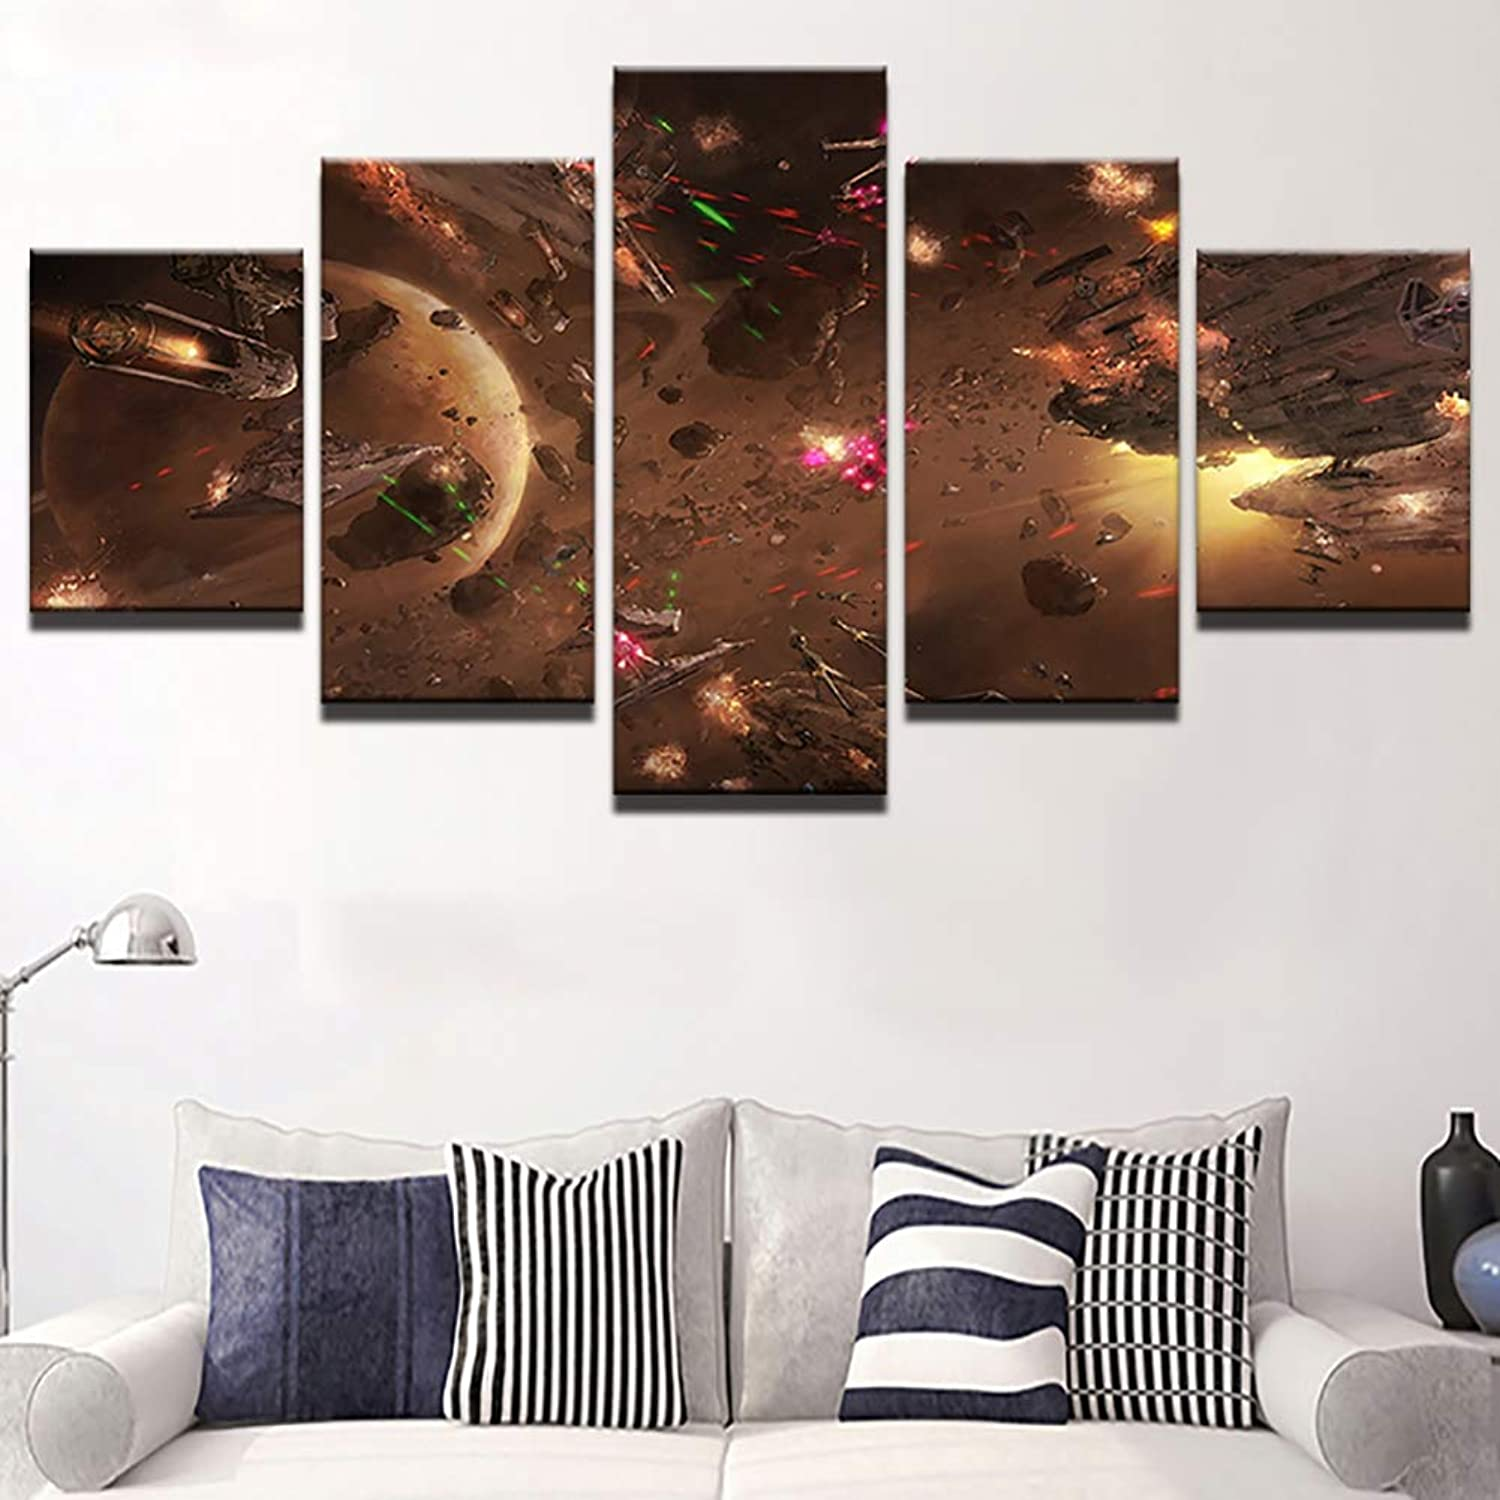 Canvas HD Prints 5 Pieces Star Wars Movie Abstract Pictures Modern Home Decor Living Room Modular Wall Art Paintings,B,30X40X230X60X230X80X1